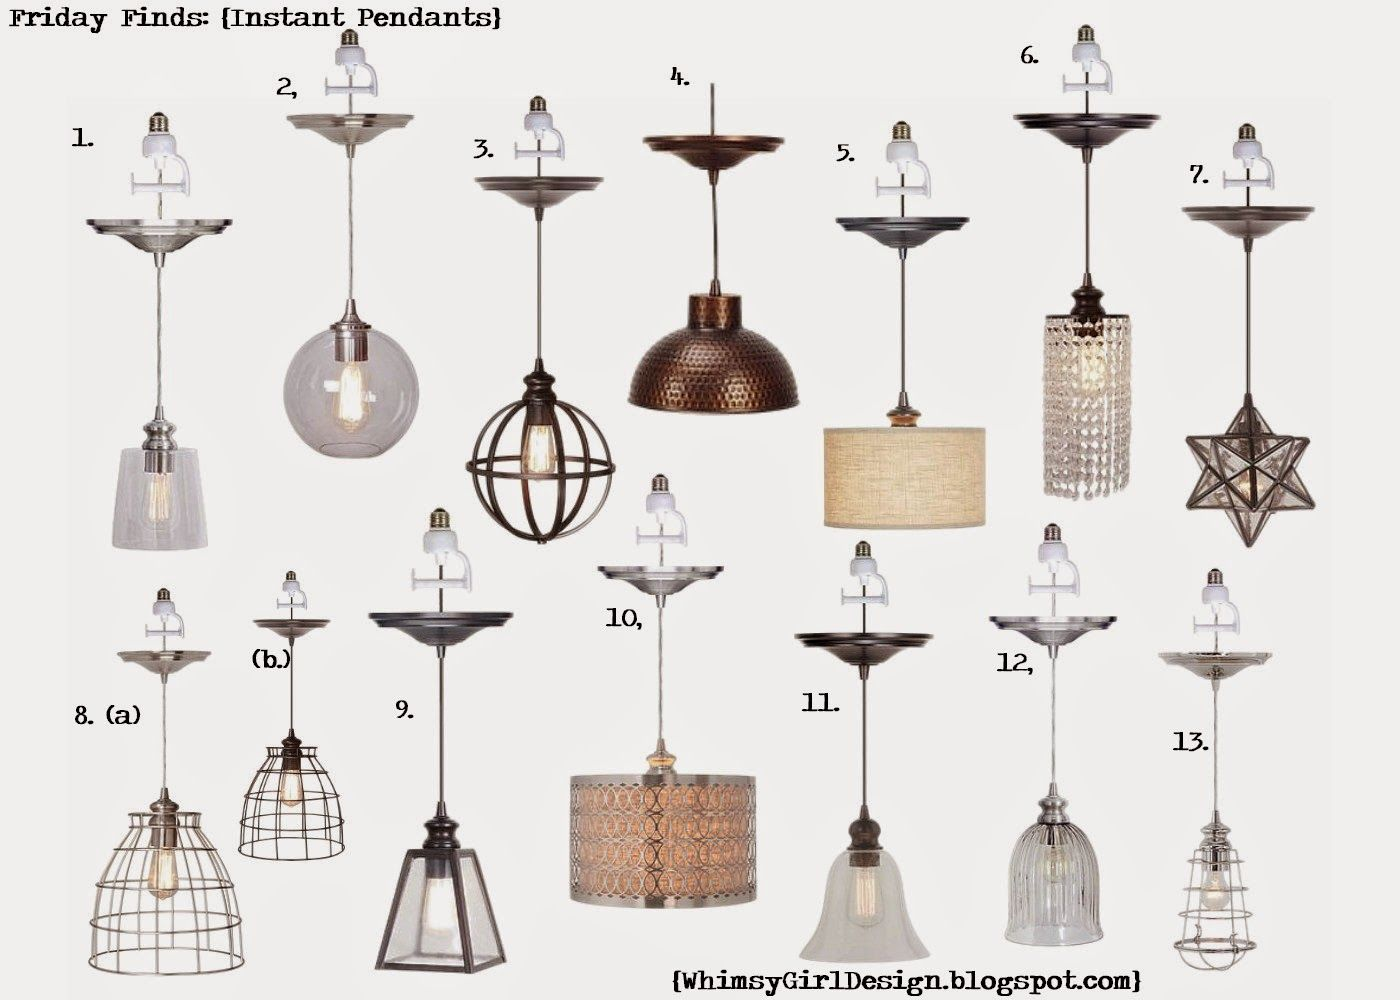 Whimsy girl design friday finds recessed lighting conversion whimsy girl design friday finds recessed lighting conversion pendants just screw the pendant arubaitofo Choice Image